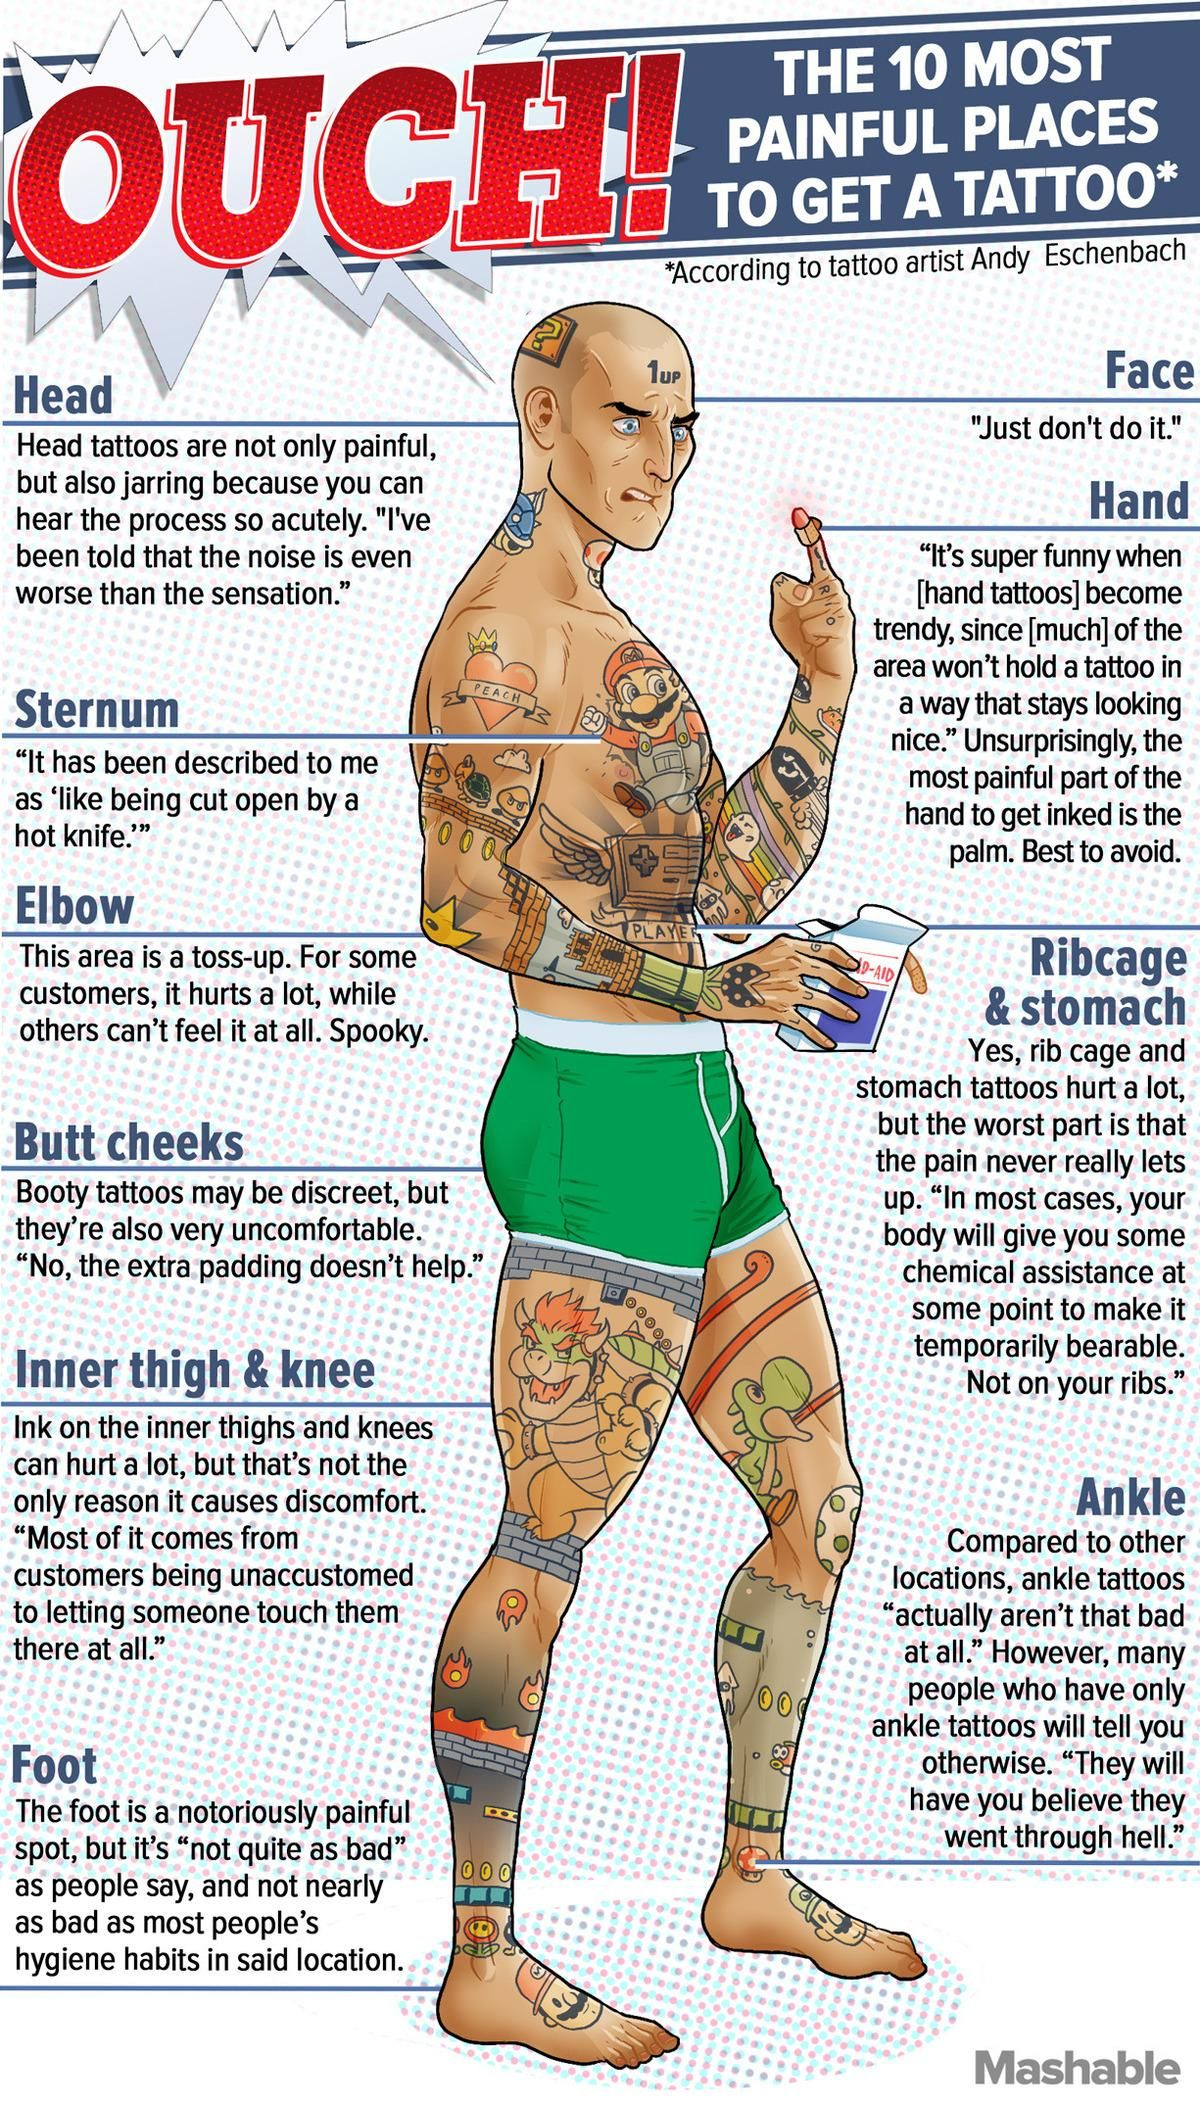 Tattoo Locations On Body: The 10 Most Painful Places To Get A Tattoo